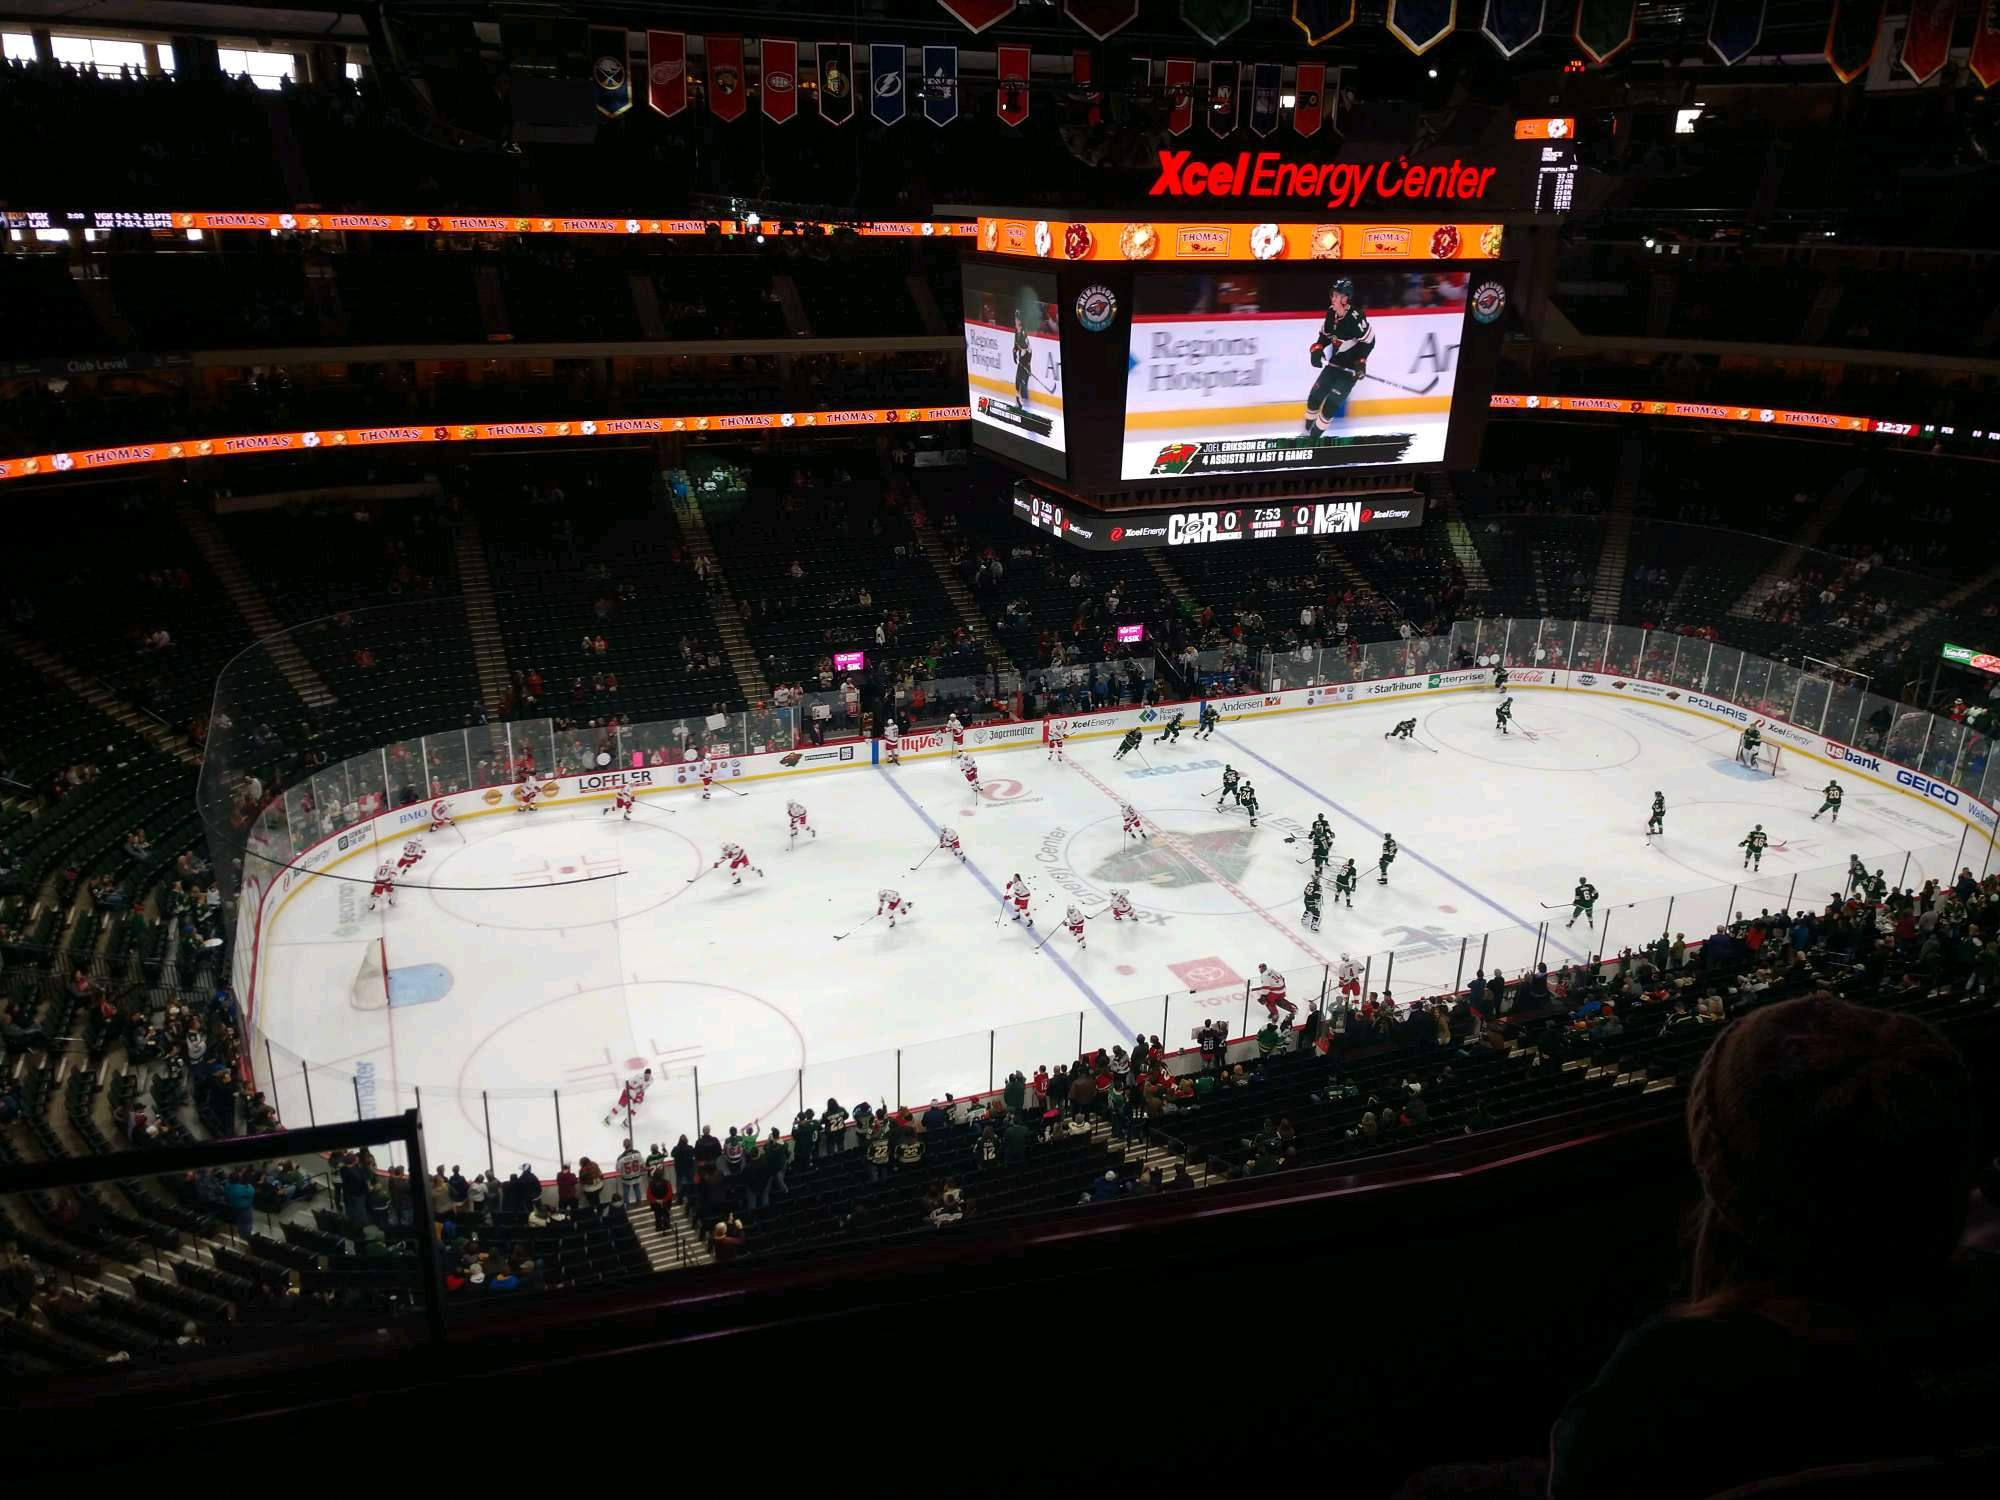 Xcel Energy Center Section 206 Row 3 Seat 20